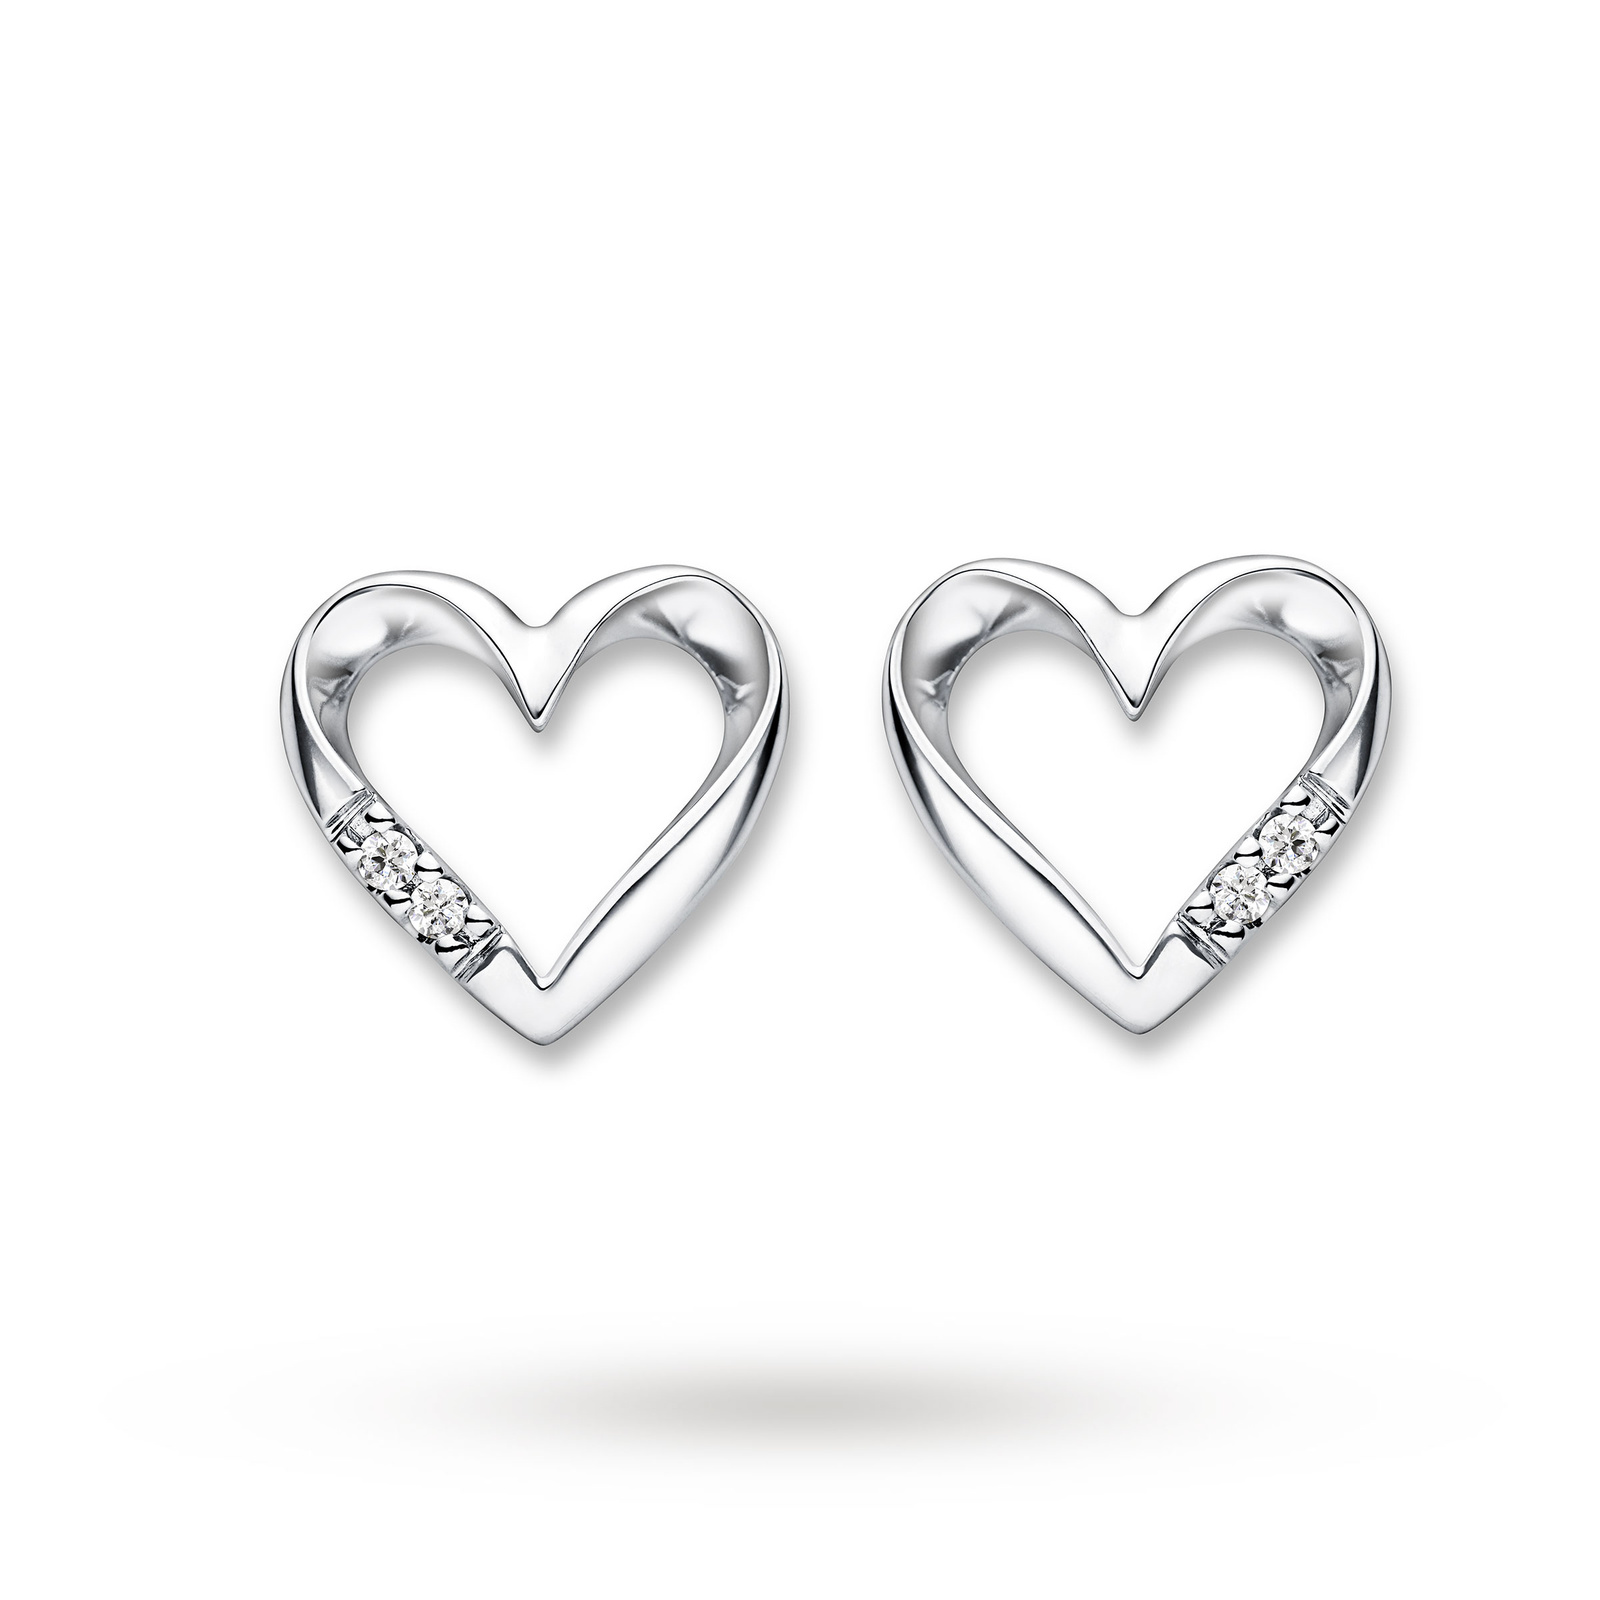 hut silver heart sterling thomas earrings the stud jewel sabo